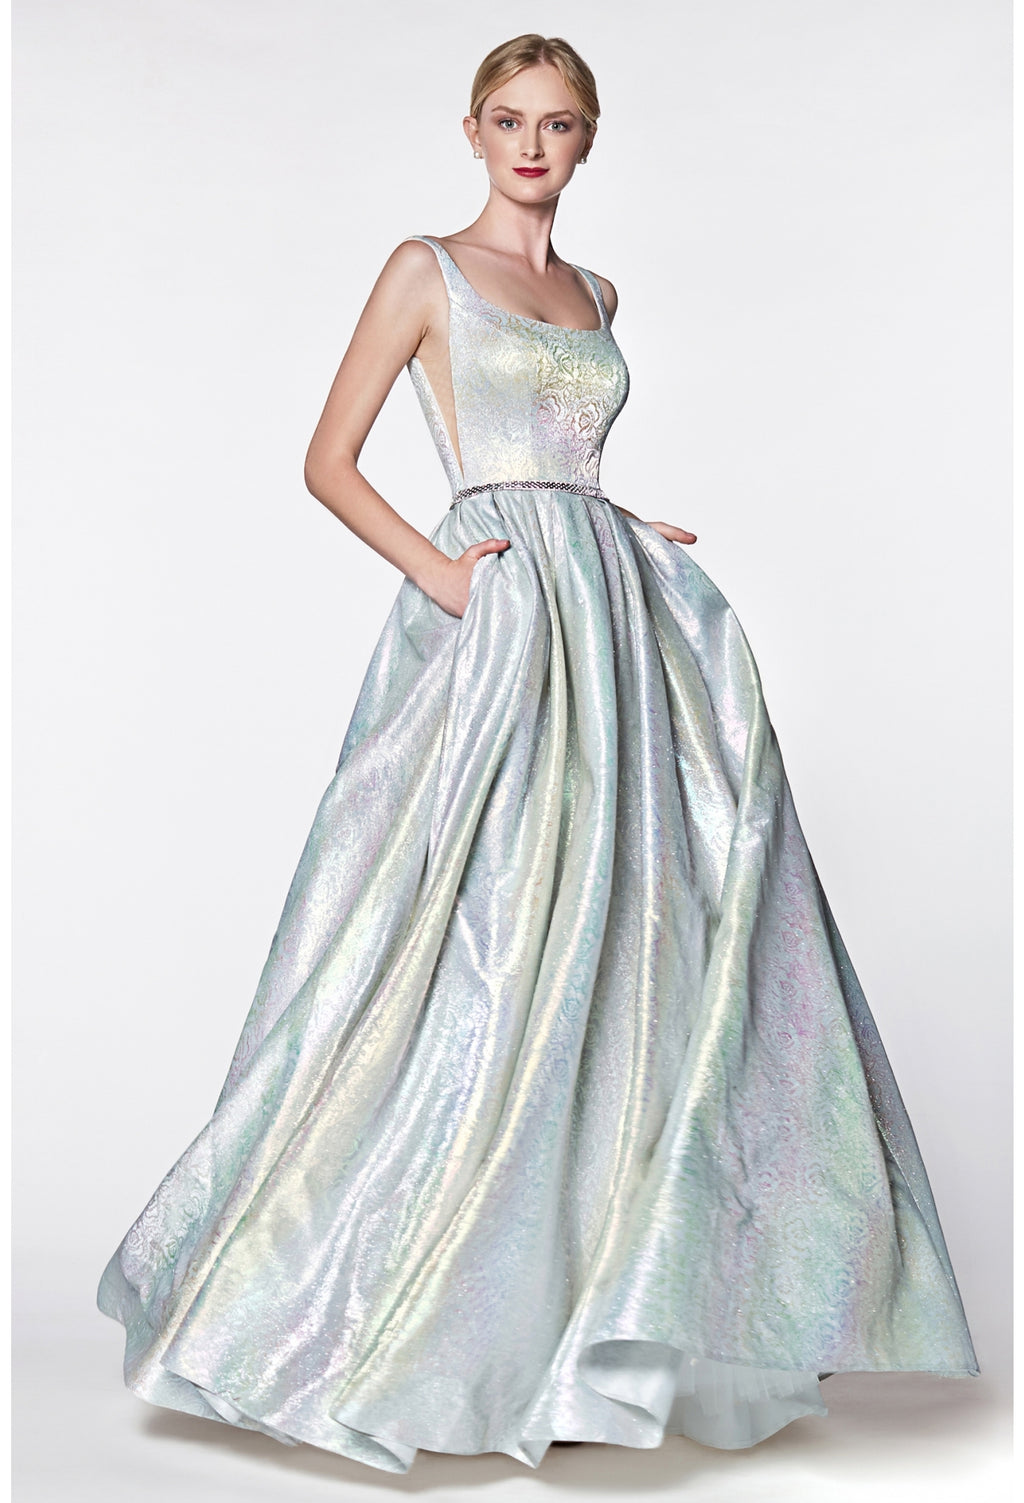 Metallic holograohic floral ball gown with illusion sides and pockets - KC Haute Couture Wedding Dress